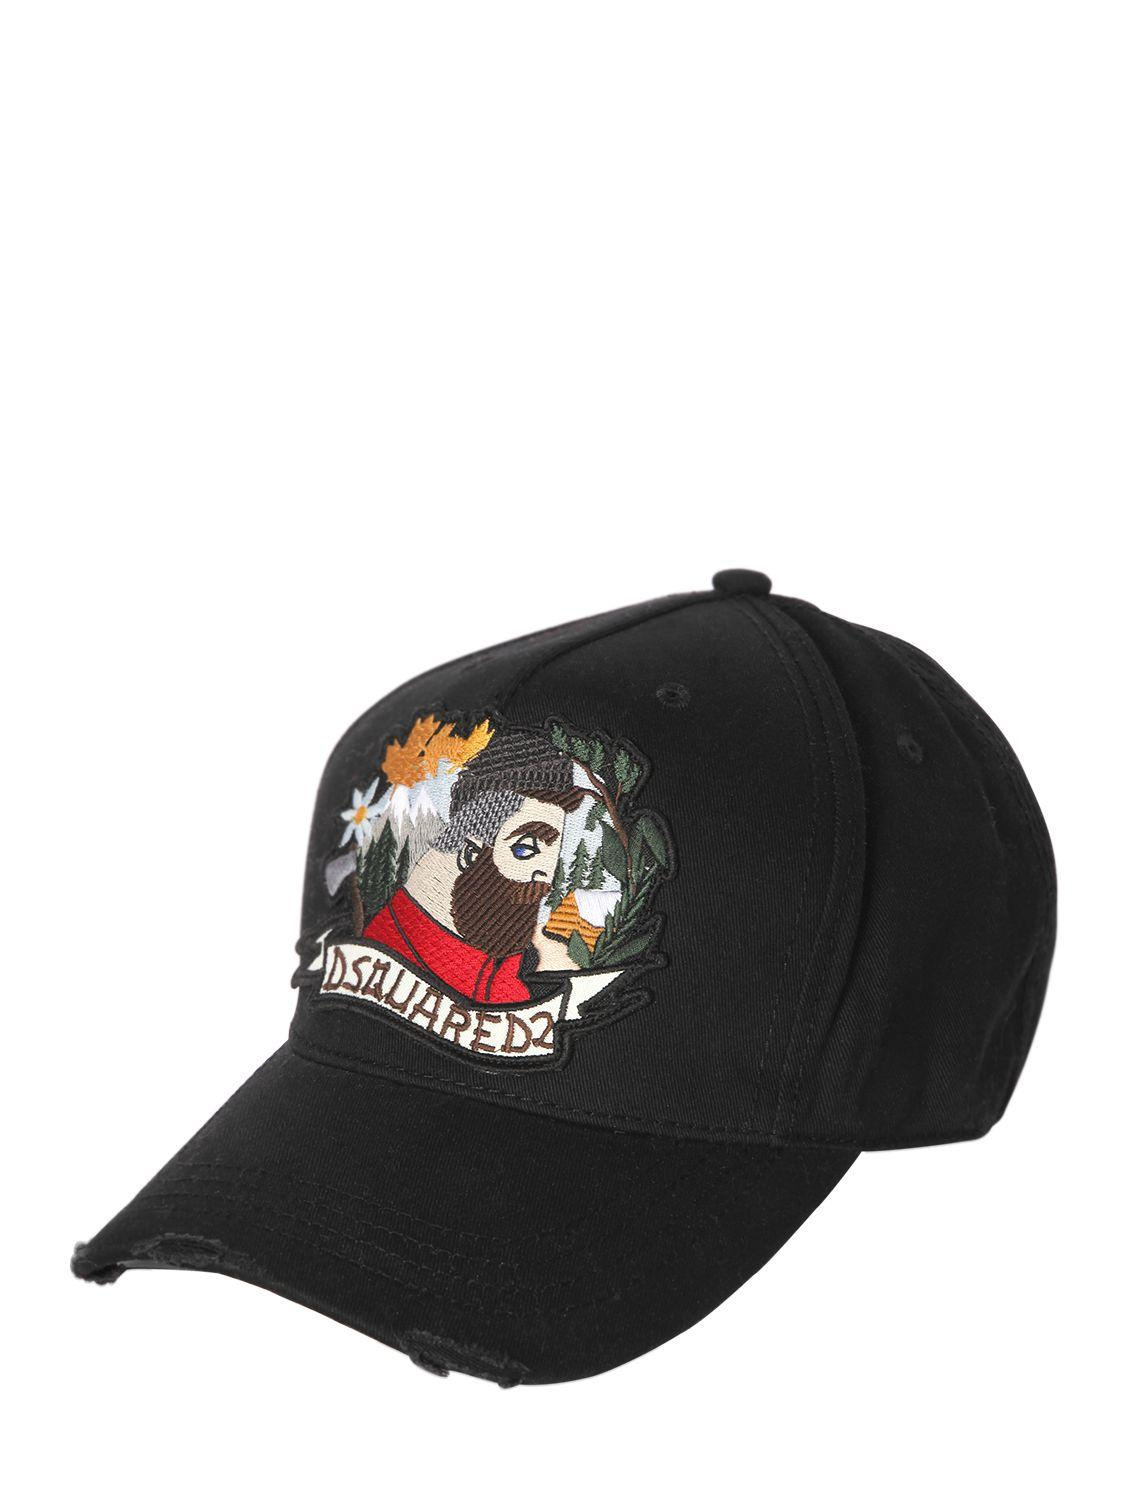 25a90fb6a62 Lyst - DSquared² Lumberjack Patch Canvas Baseball Hat in Black for Men